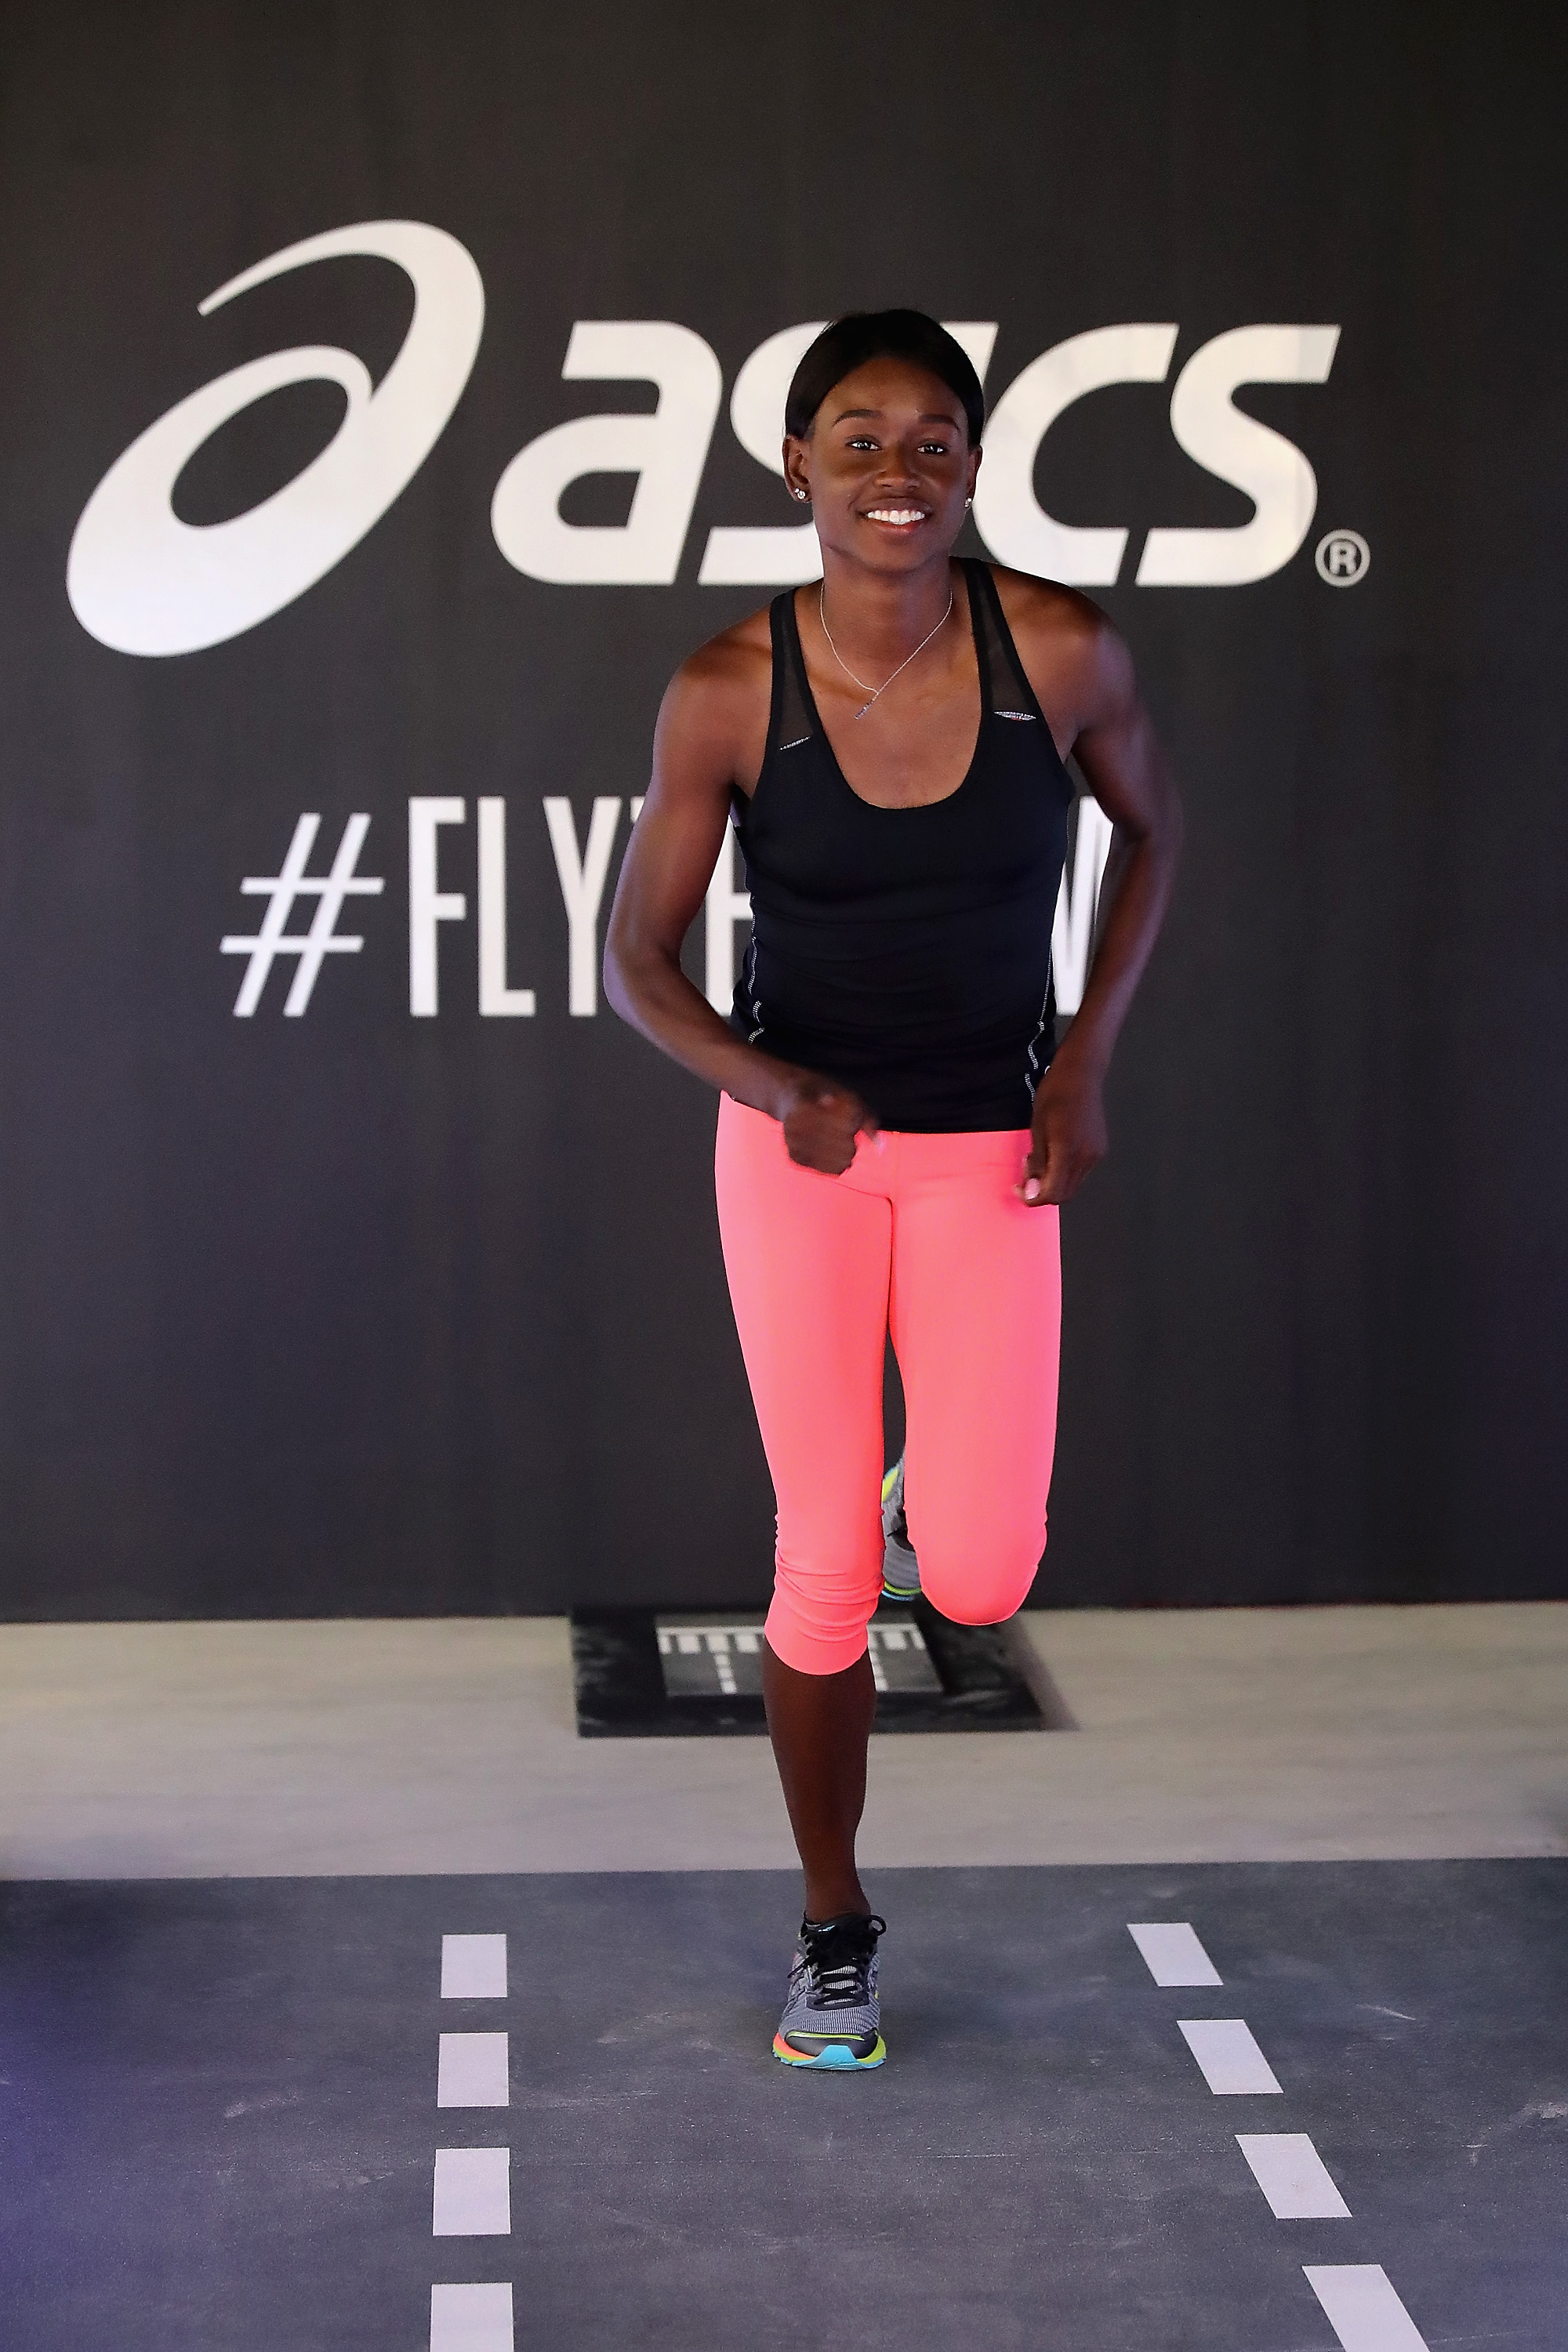 NEW YORK, NY - JUNE 14: ASICS elite athlete Candace Hill takes a demo run on the DynaFlyte Deck test track, showing off the new DynaFlyte shoe, ASICS lightest-ever cushioning shoe for runners who want speed at the Global Launch Event on June 14, 2016 in New York City. (Photo by Neilson Barnard/Getty Images for ASICS)